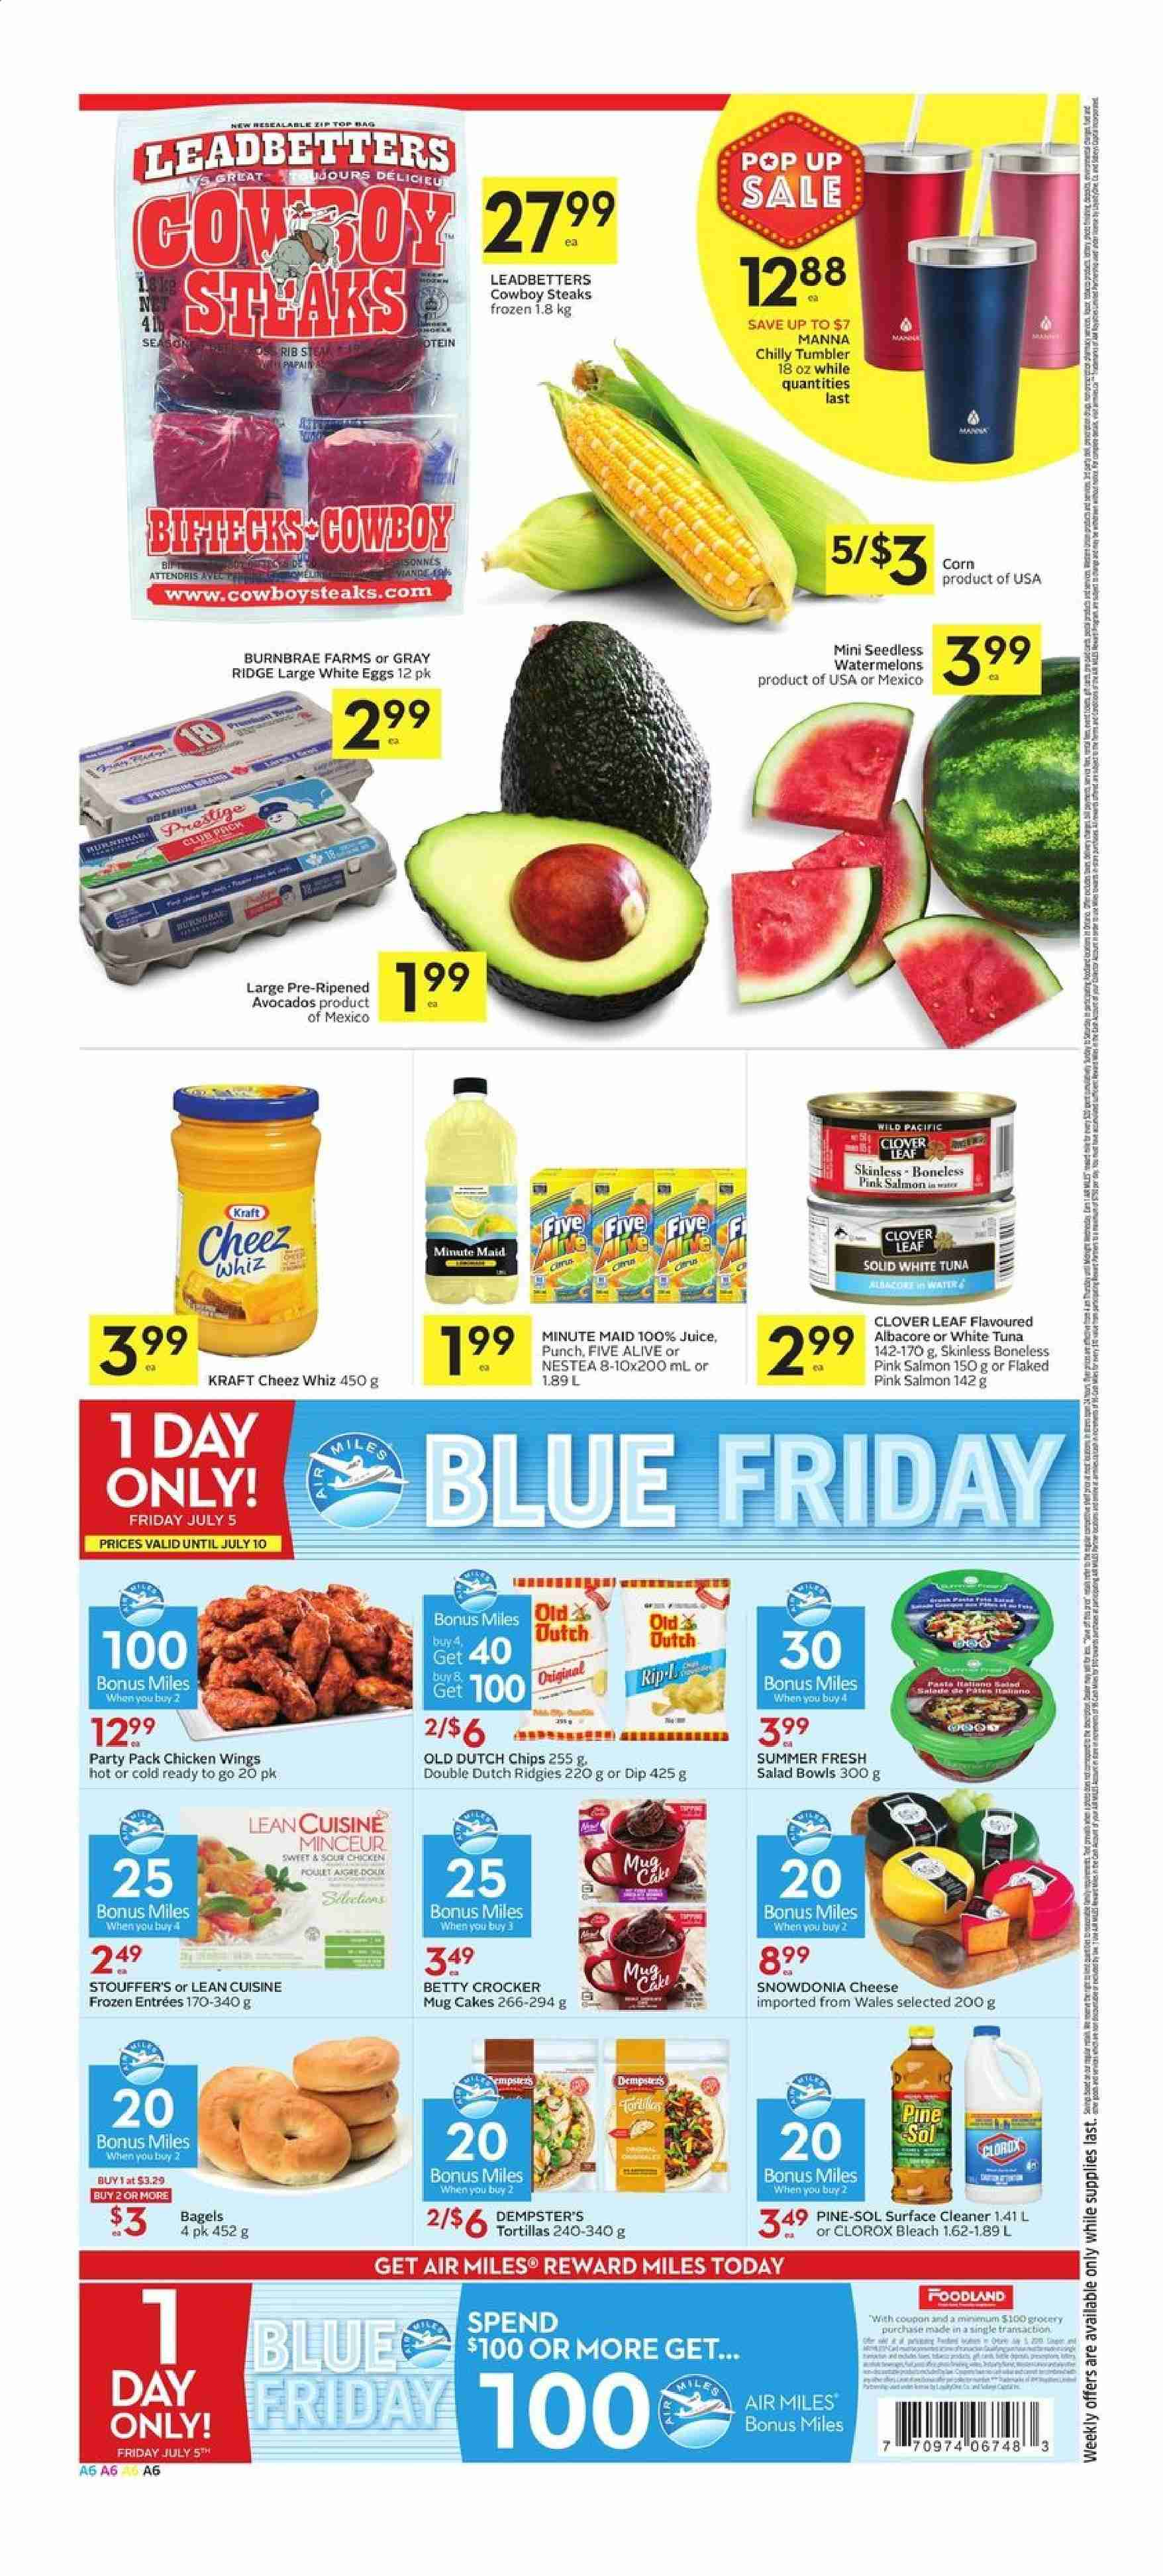 Foodland Flyer  - July 04, 2019 - July 10, 2019. Page 6.